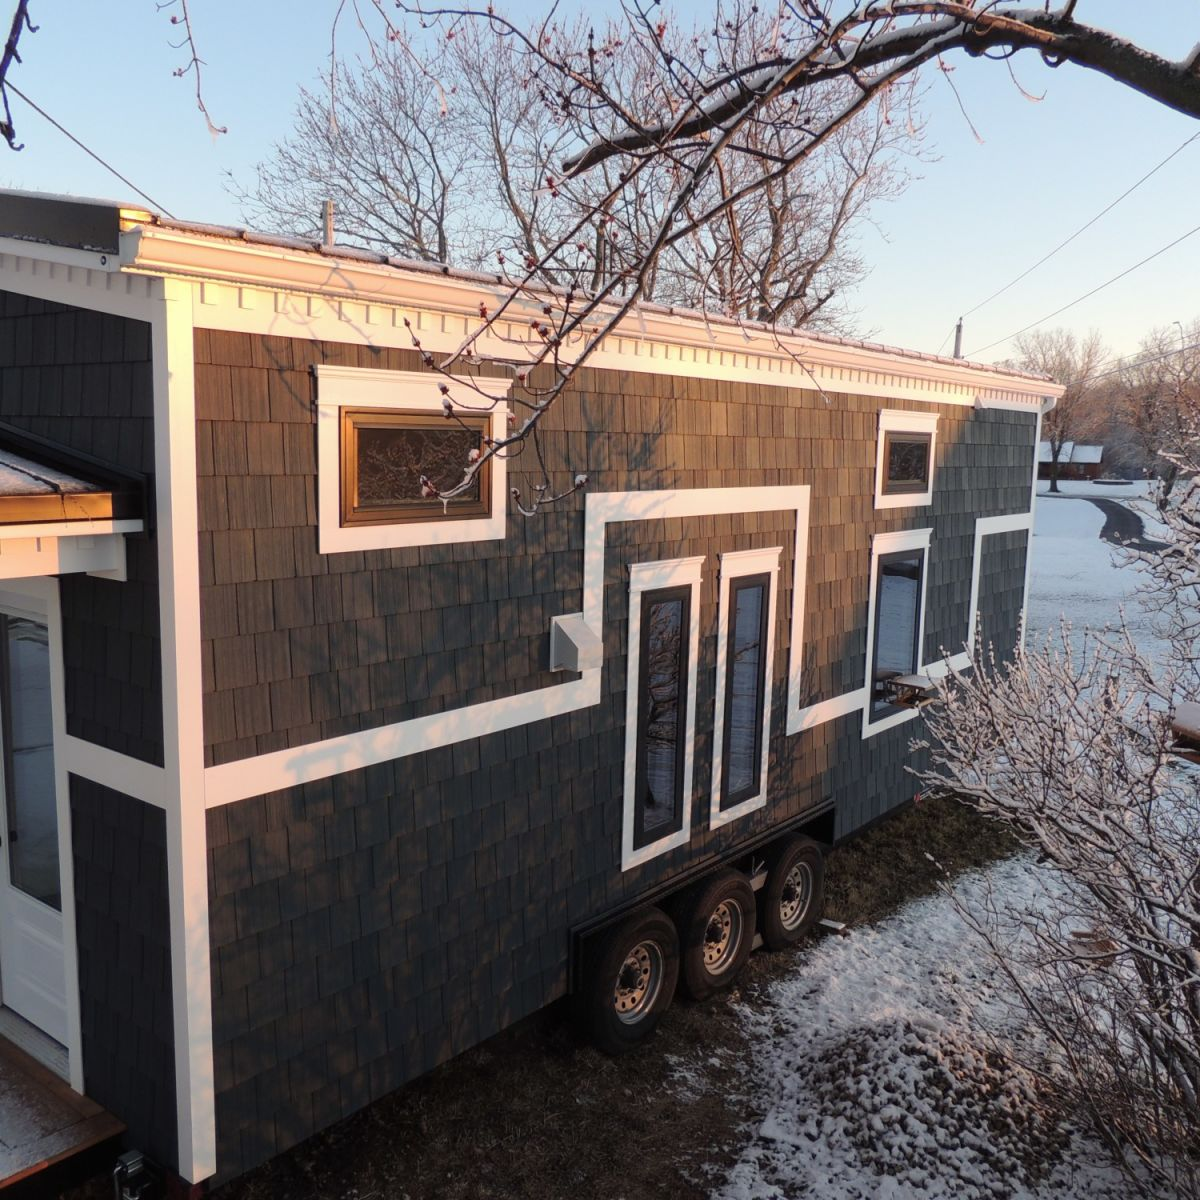 Beautiful Tiny Home with Downstairs Bedroom and Bathtub! - Tiny House for  Sale in huntington, Indiana - Tiny House Listings